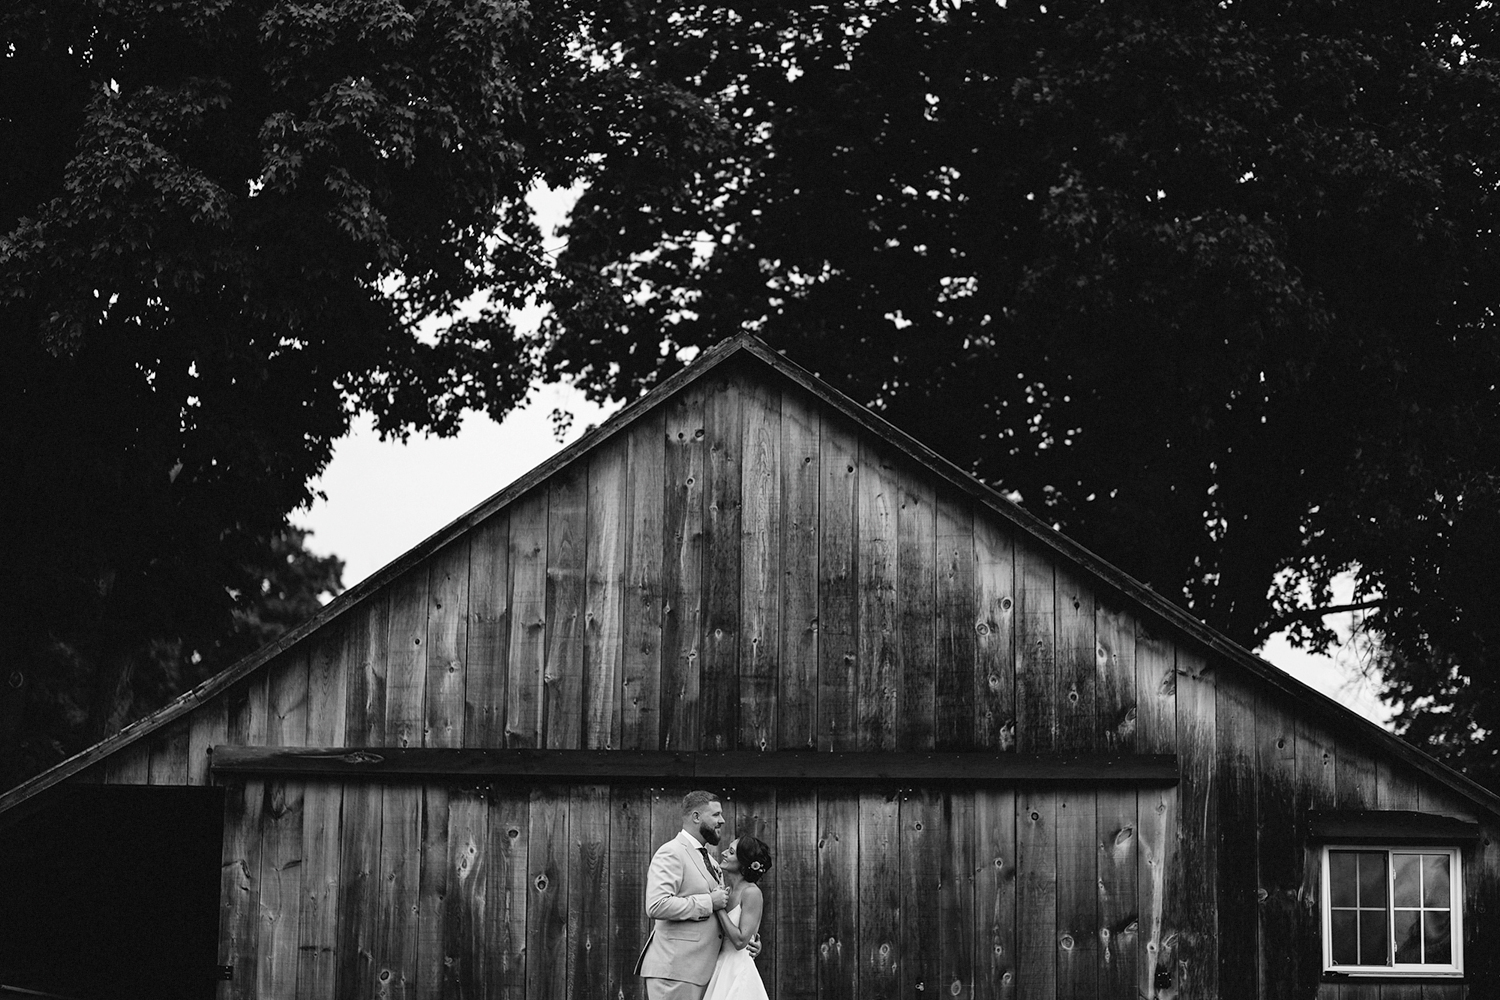 Editorial-Toronto-Wedding-Photographers-Photojournalistic-Wedding-Photography-in-Toronto-Ryanne-Hollies-Photography-candid-documentary-bradford-barn-wedding-venue-inspiration-couples-portraits-romantic-magazine-fashion-inspired-models.jpg